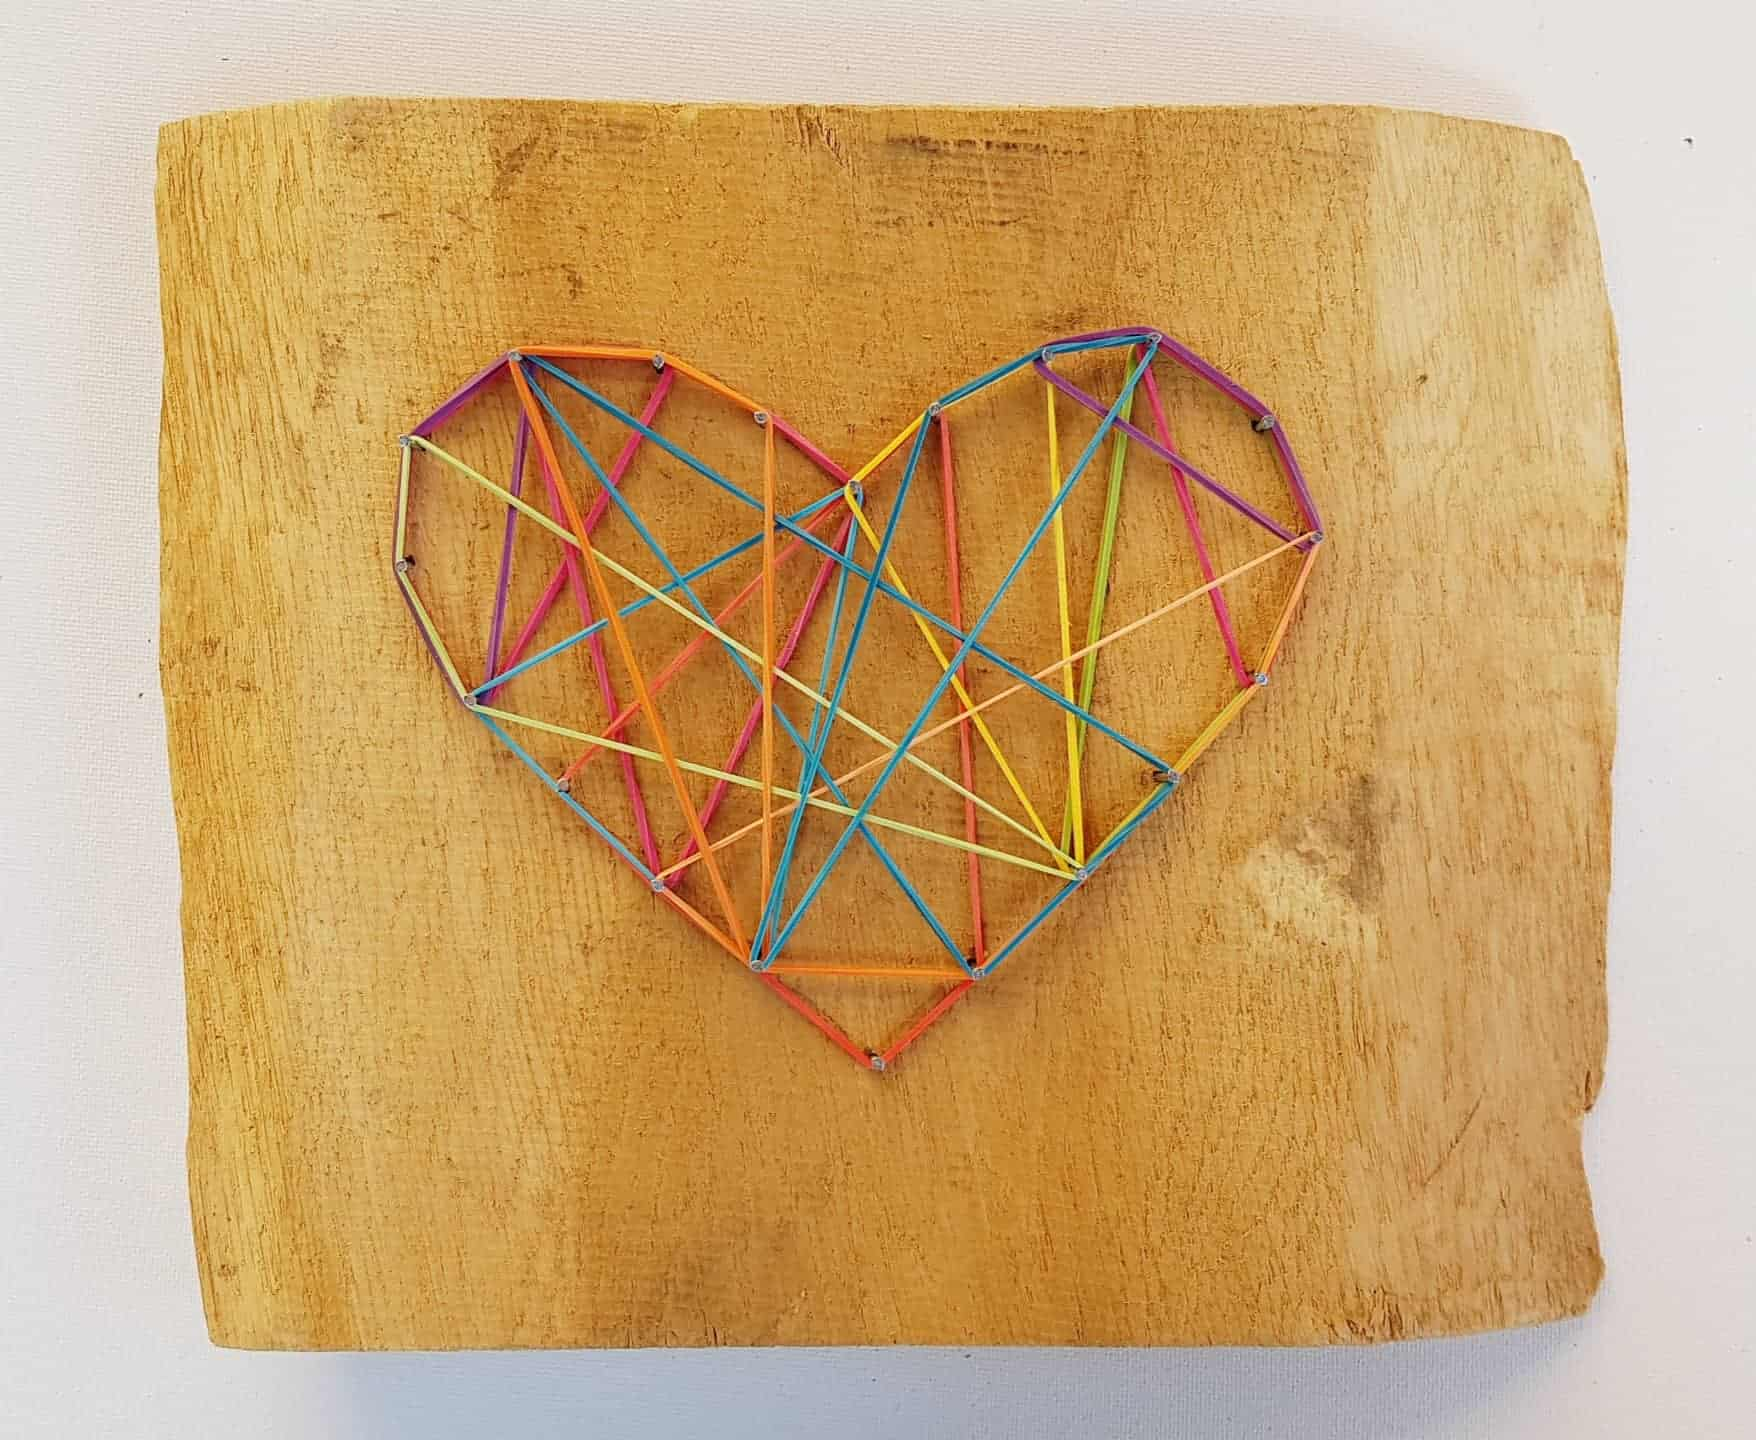 Heart with Nails and rubber bands